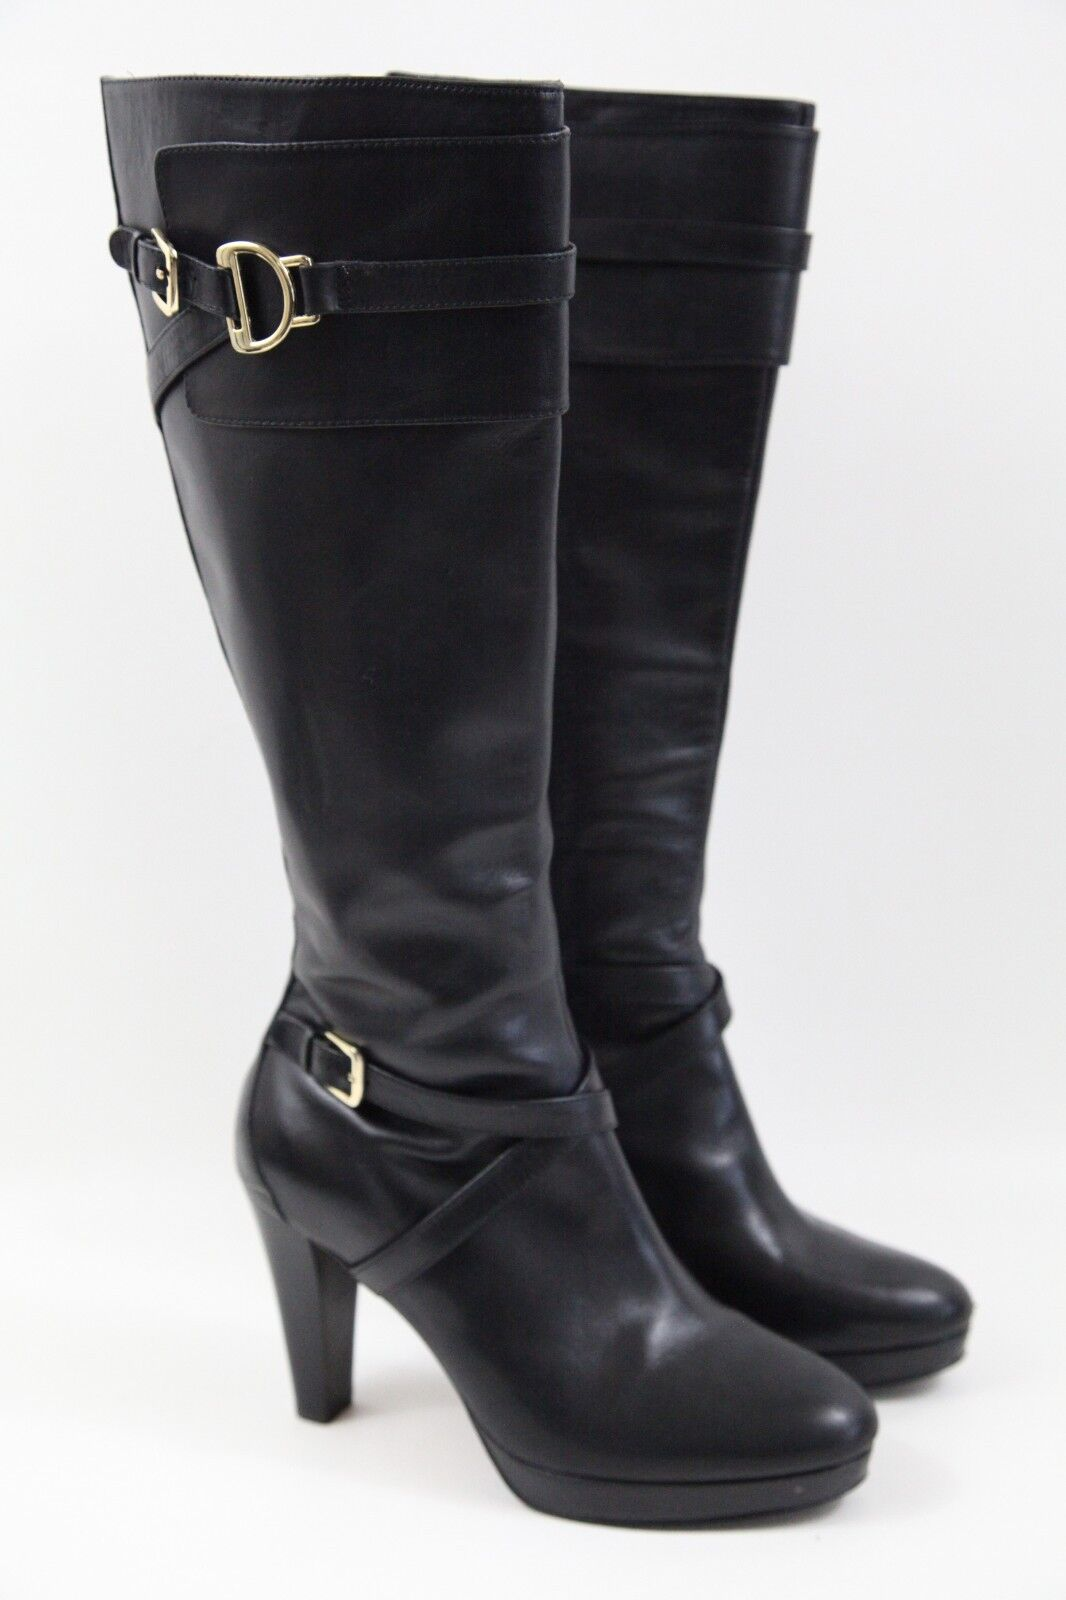 ##$498 Cole Haan Poppy Boot in Black Size 8 B